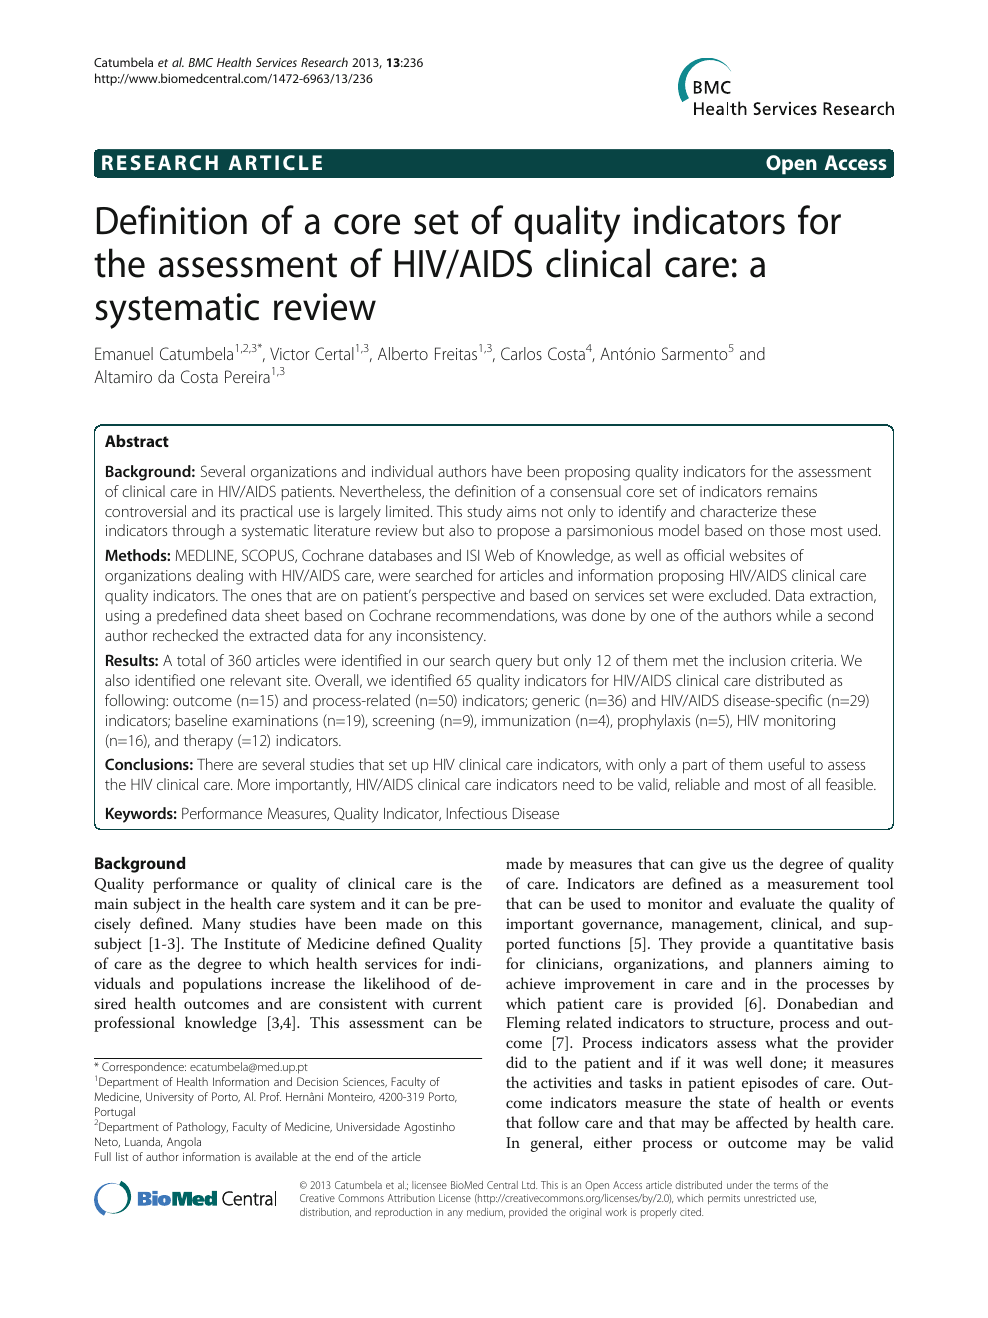 Definition of a core set of quality indicators for the